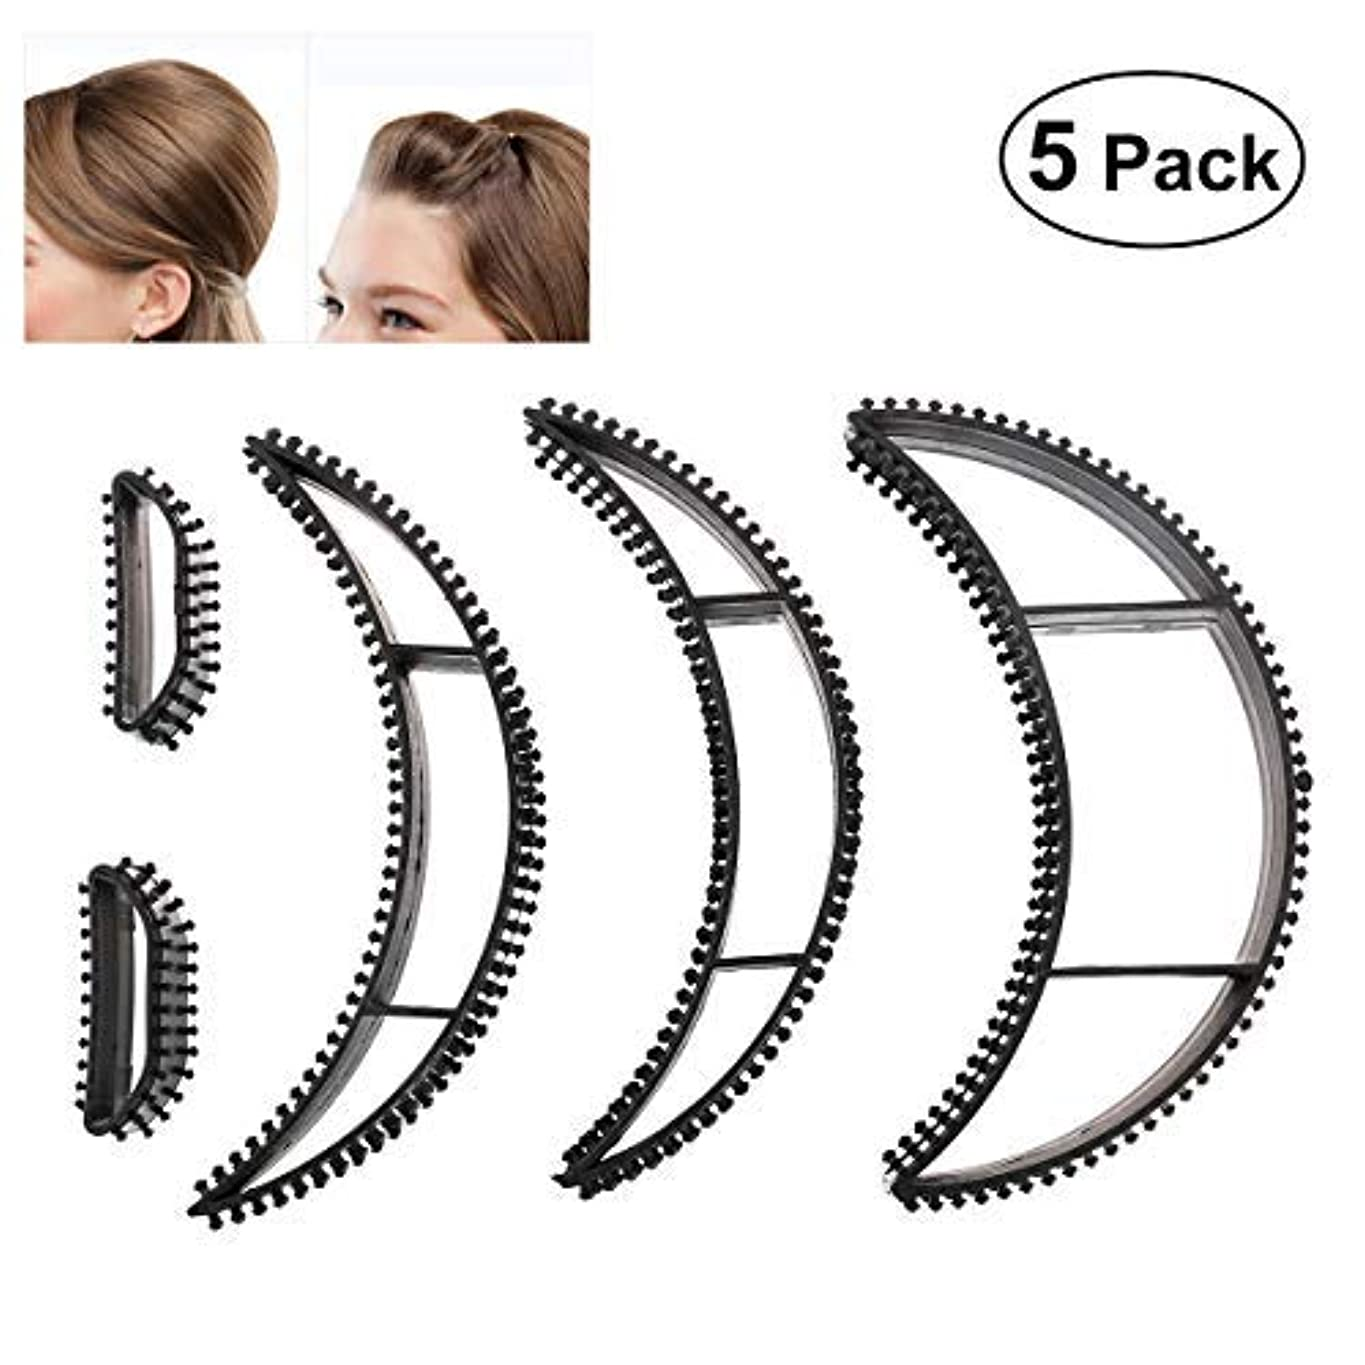 Tinksky Big Bumpits Happie Hair Volumizing Inserts Hair Pump Beauty Set Tool Gift,Pack of 5 (Black) [並行輸入品]